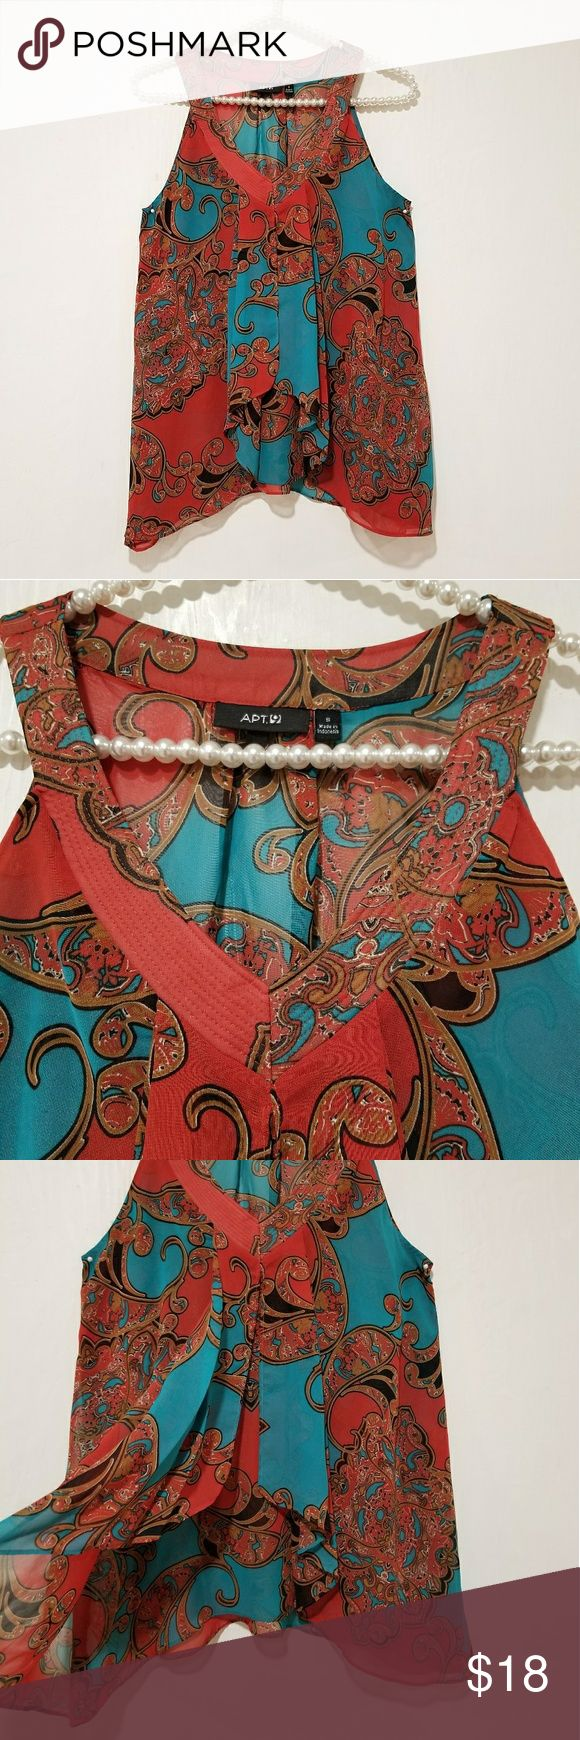 """NWT women blouse light weight colorful Brand new with tag very elegant sleeveless multi colors light weight blouse.  Perfect for casual to party. You can style this with skinny jeans black dress pants shorts. Length =27"""" Chest =16"""" armpit to armpit  Size =small Apt. 9 Tops Blouses"""